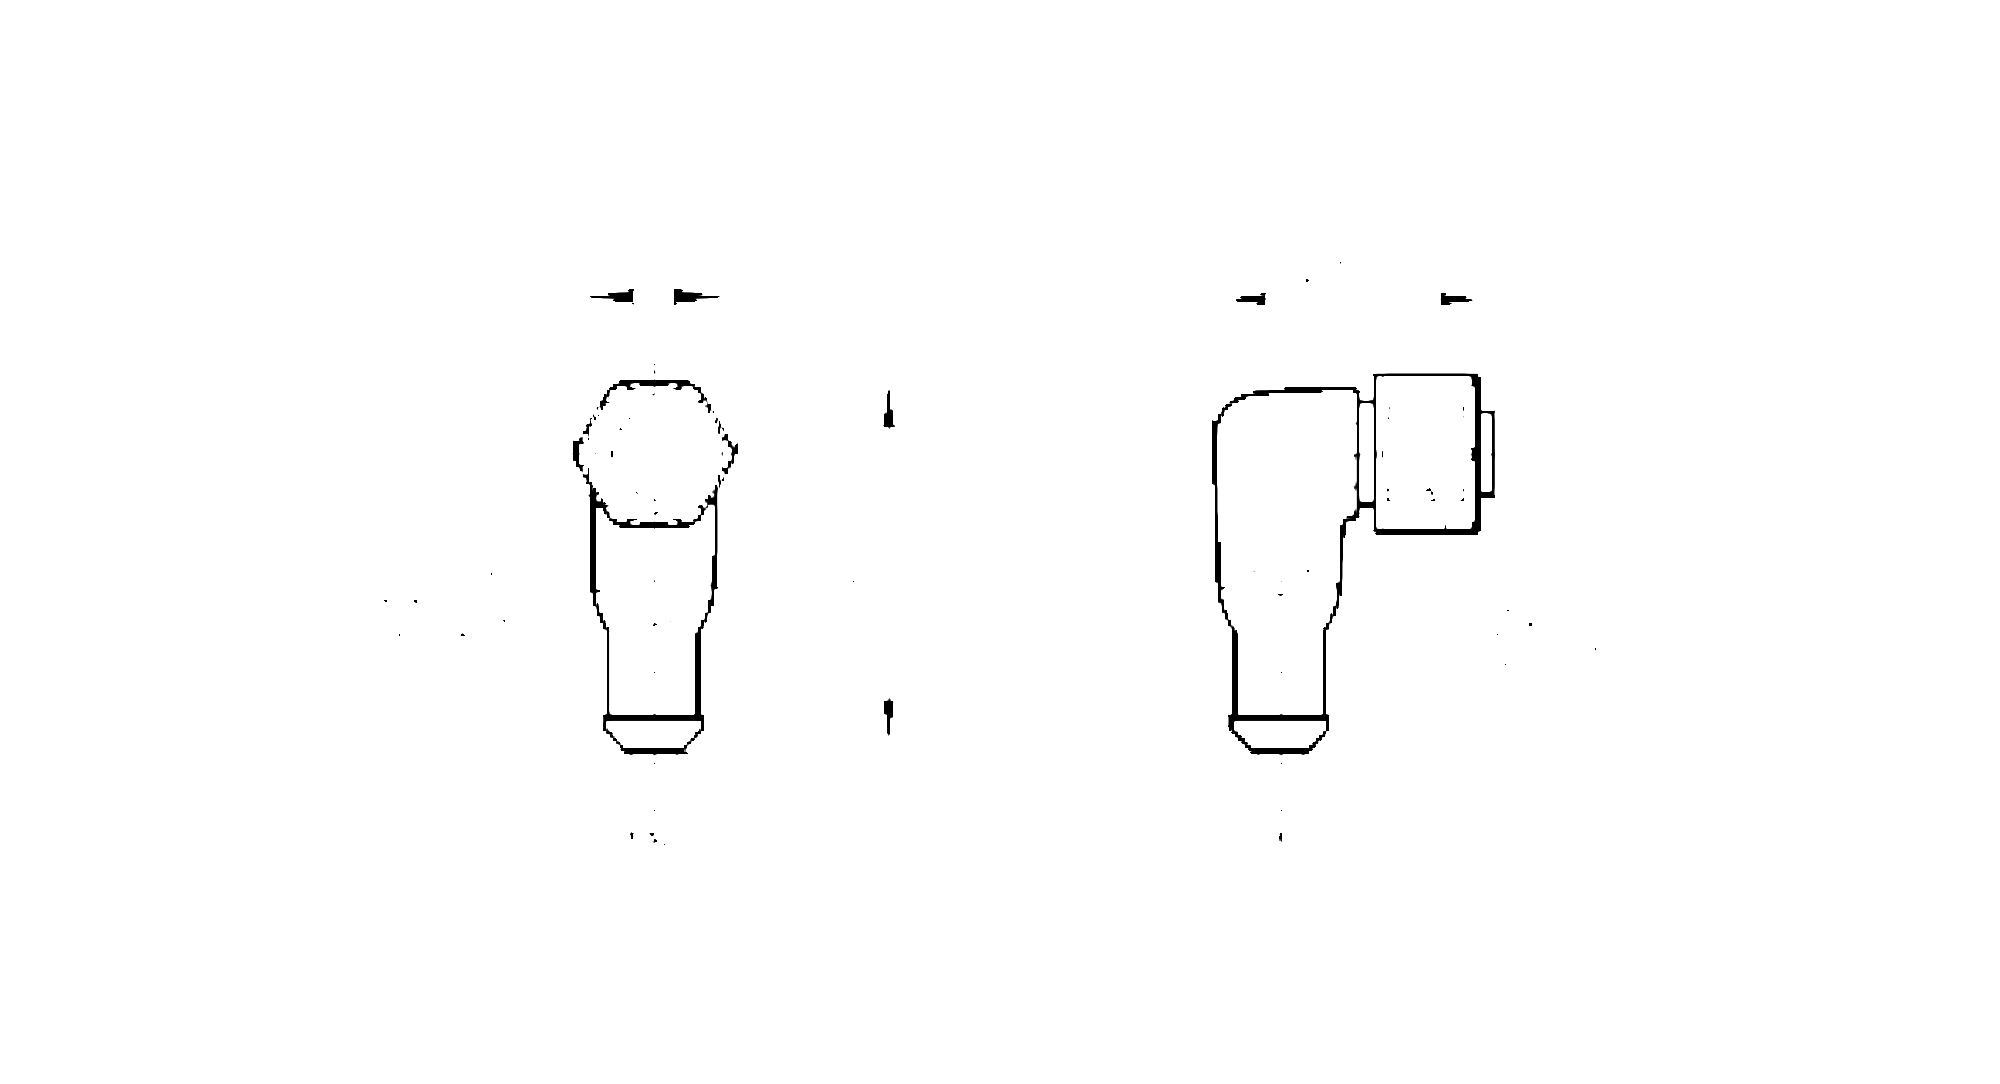 evm005 - connecting cable with socket